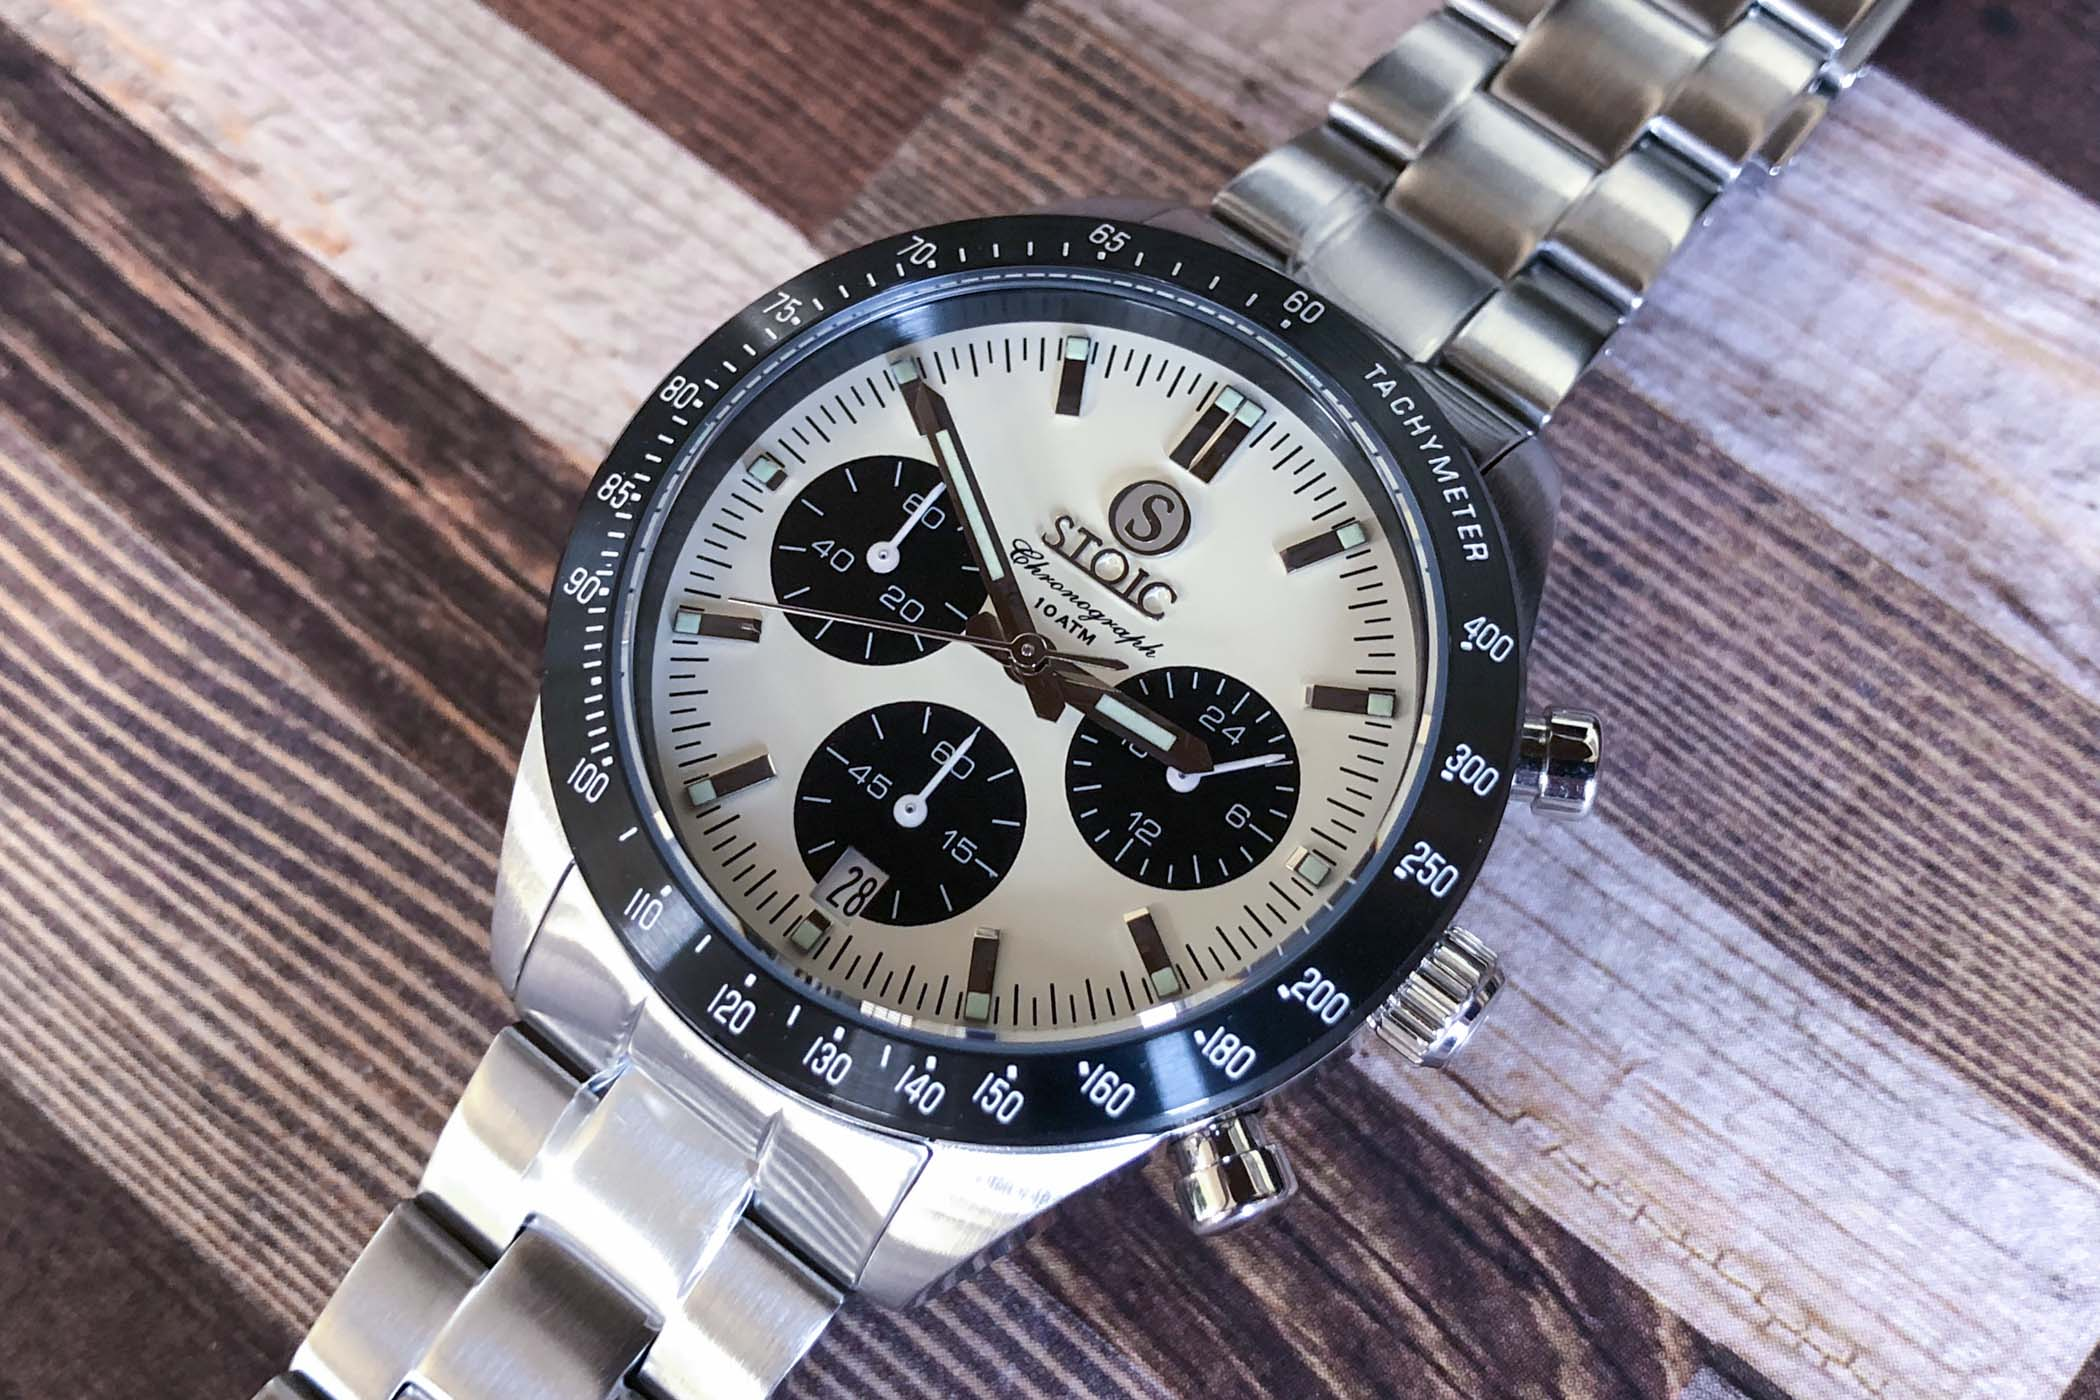 Stoic World chronograph Peter Speake Marin review - 3